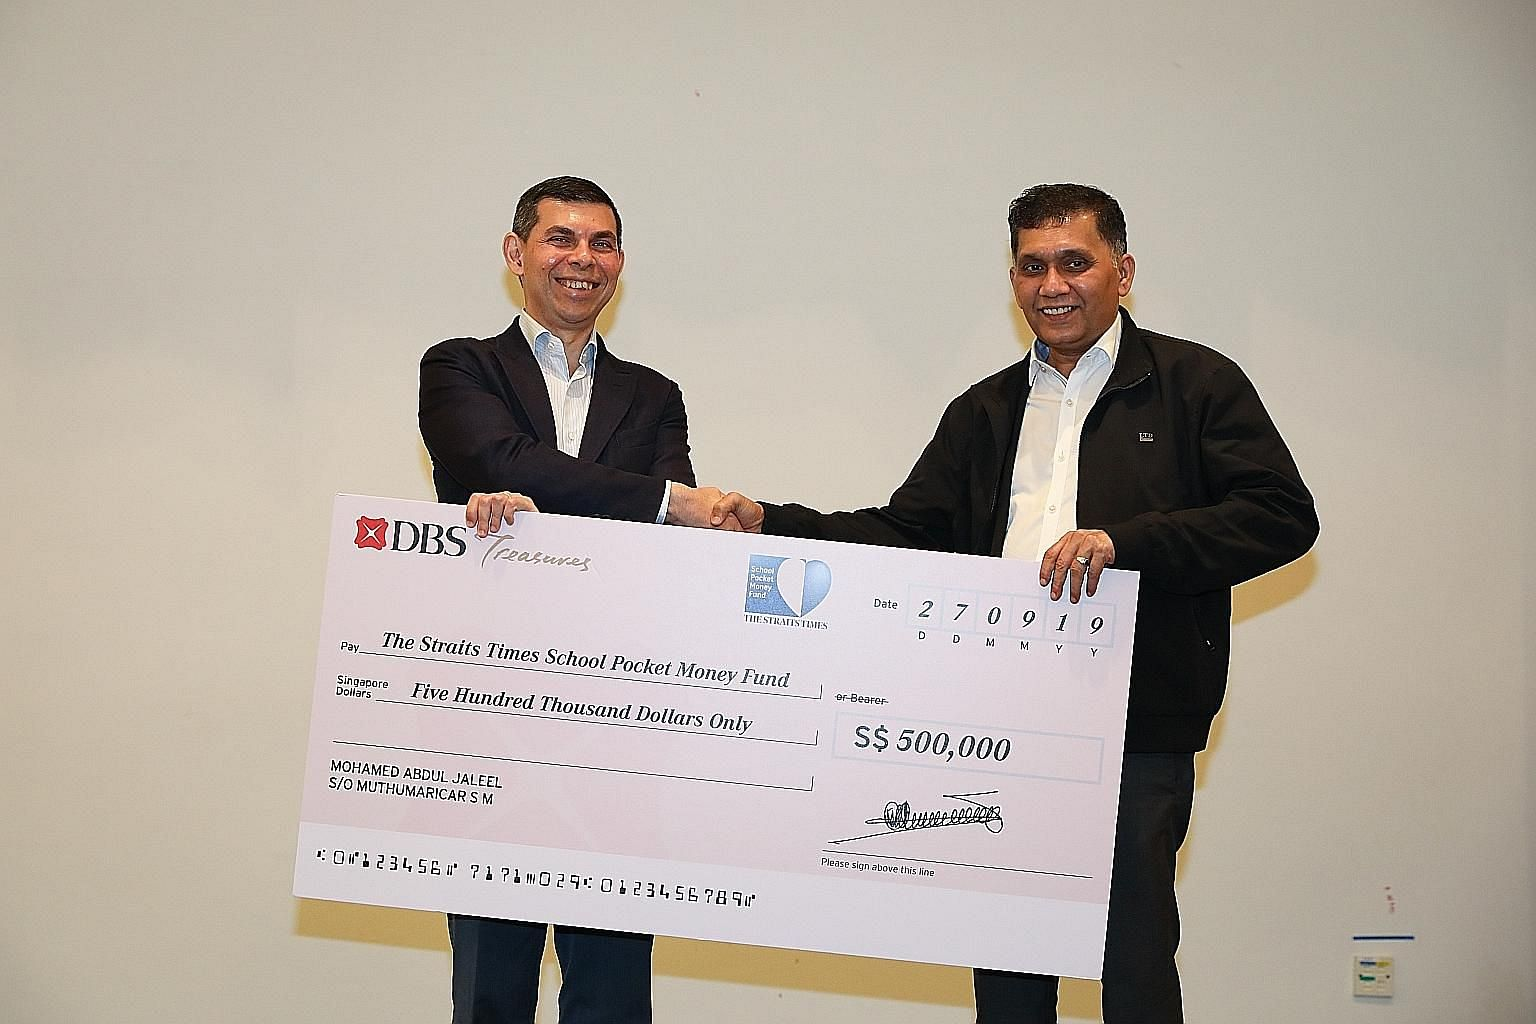 ST School Pocket Money Fund chairman Warren Fernandez (left) receiving a donation of $500,000 to the fund from Mini Environment Service Group founder and chief executive Mohamed Abdul Jaleel yesterday. Mr Jaleel, a long-time supporter of the fund, ha